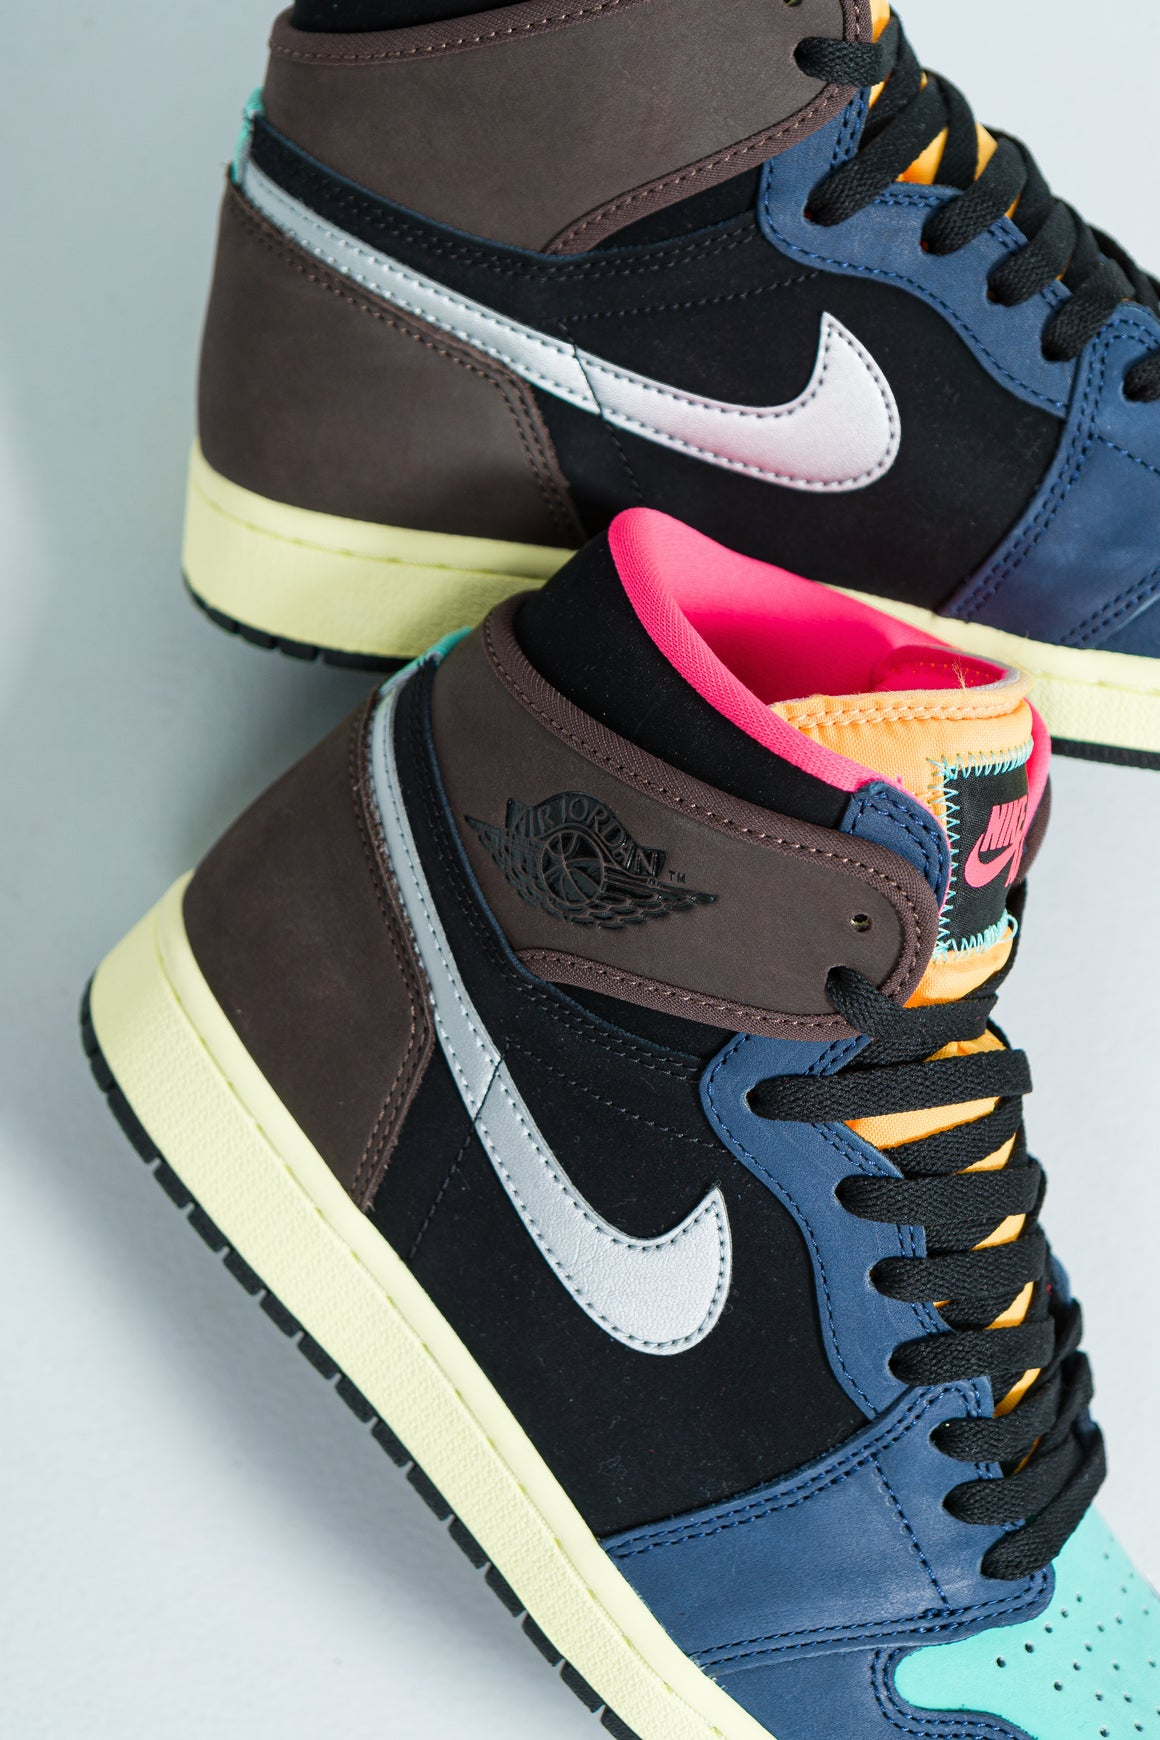 Air Jordan 1 Retro High OG - Baroque Brown/Black-Laser Orange-Racer Pink